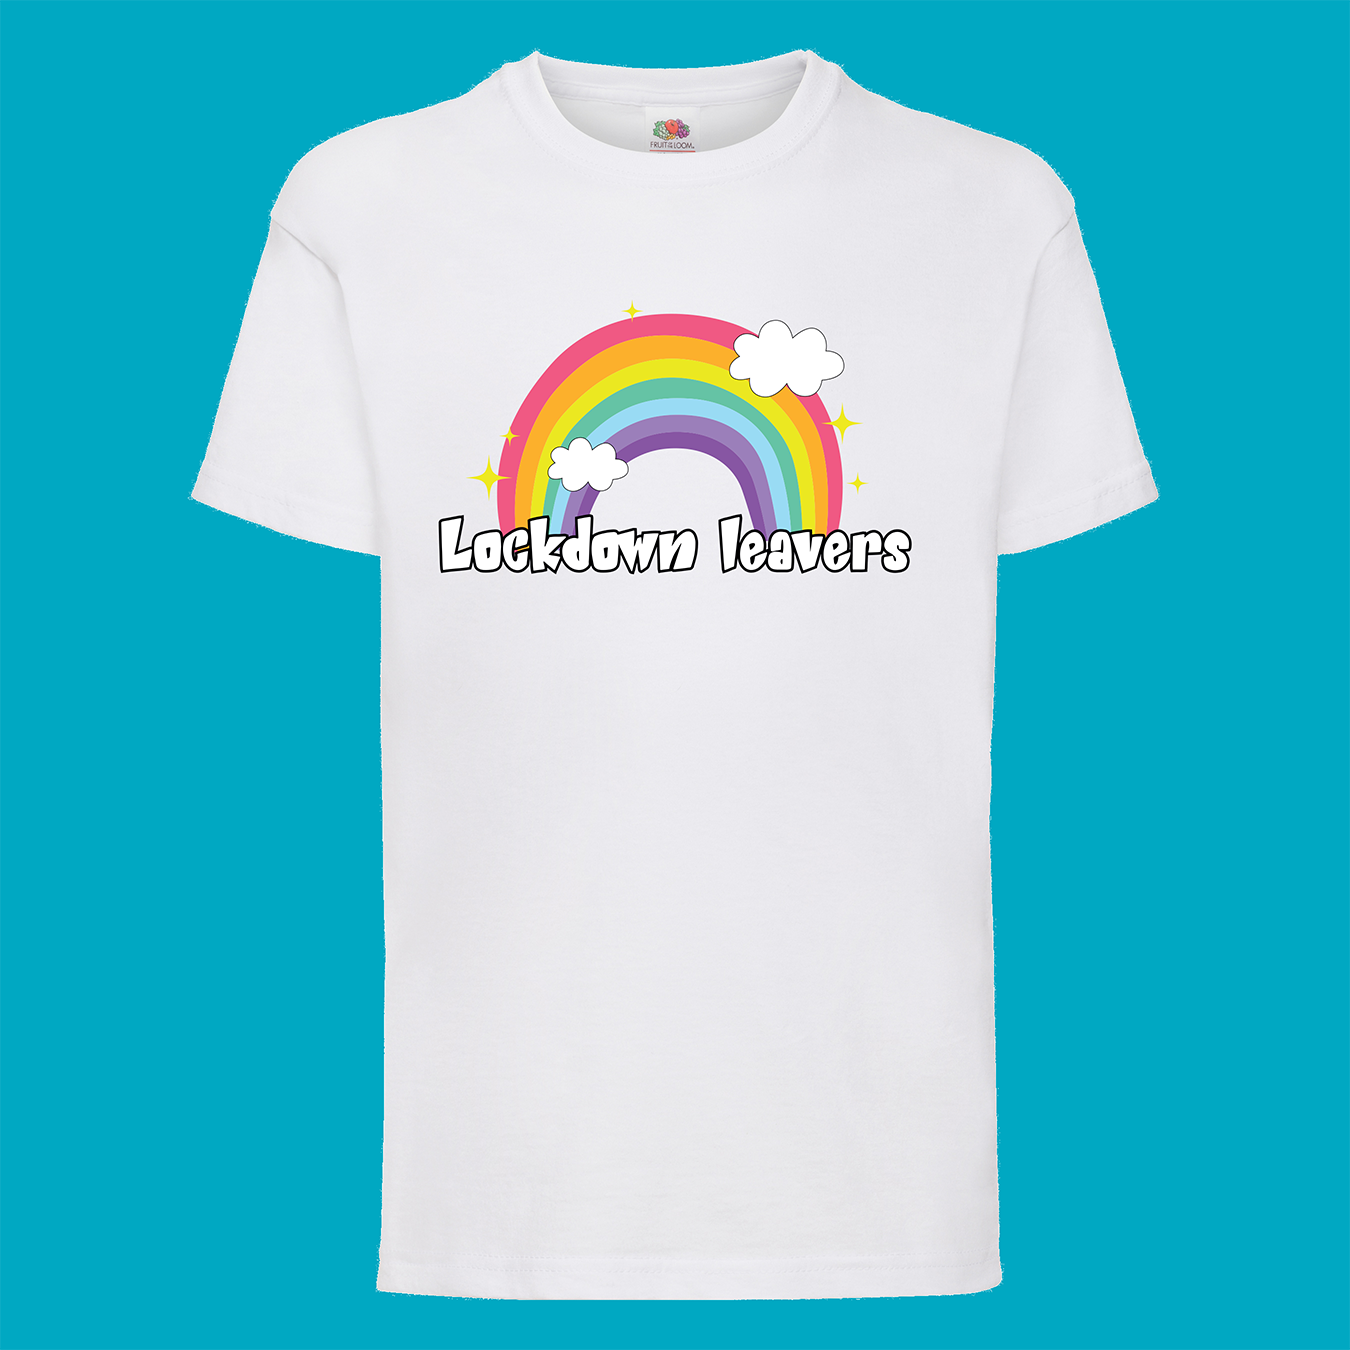 Lockdown LEavers - School Trends 2020 school leavers t-shirts